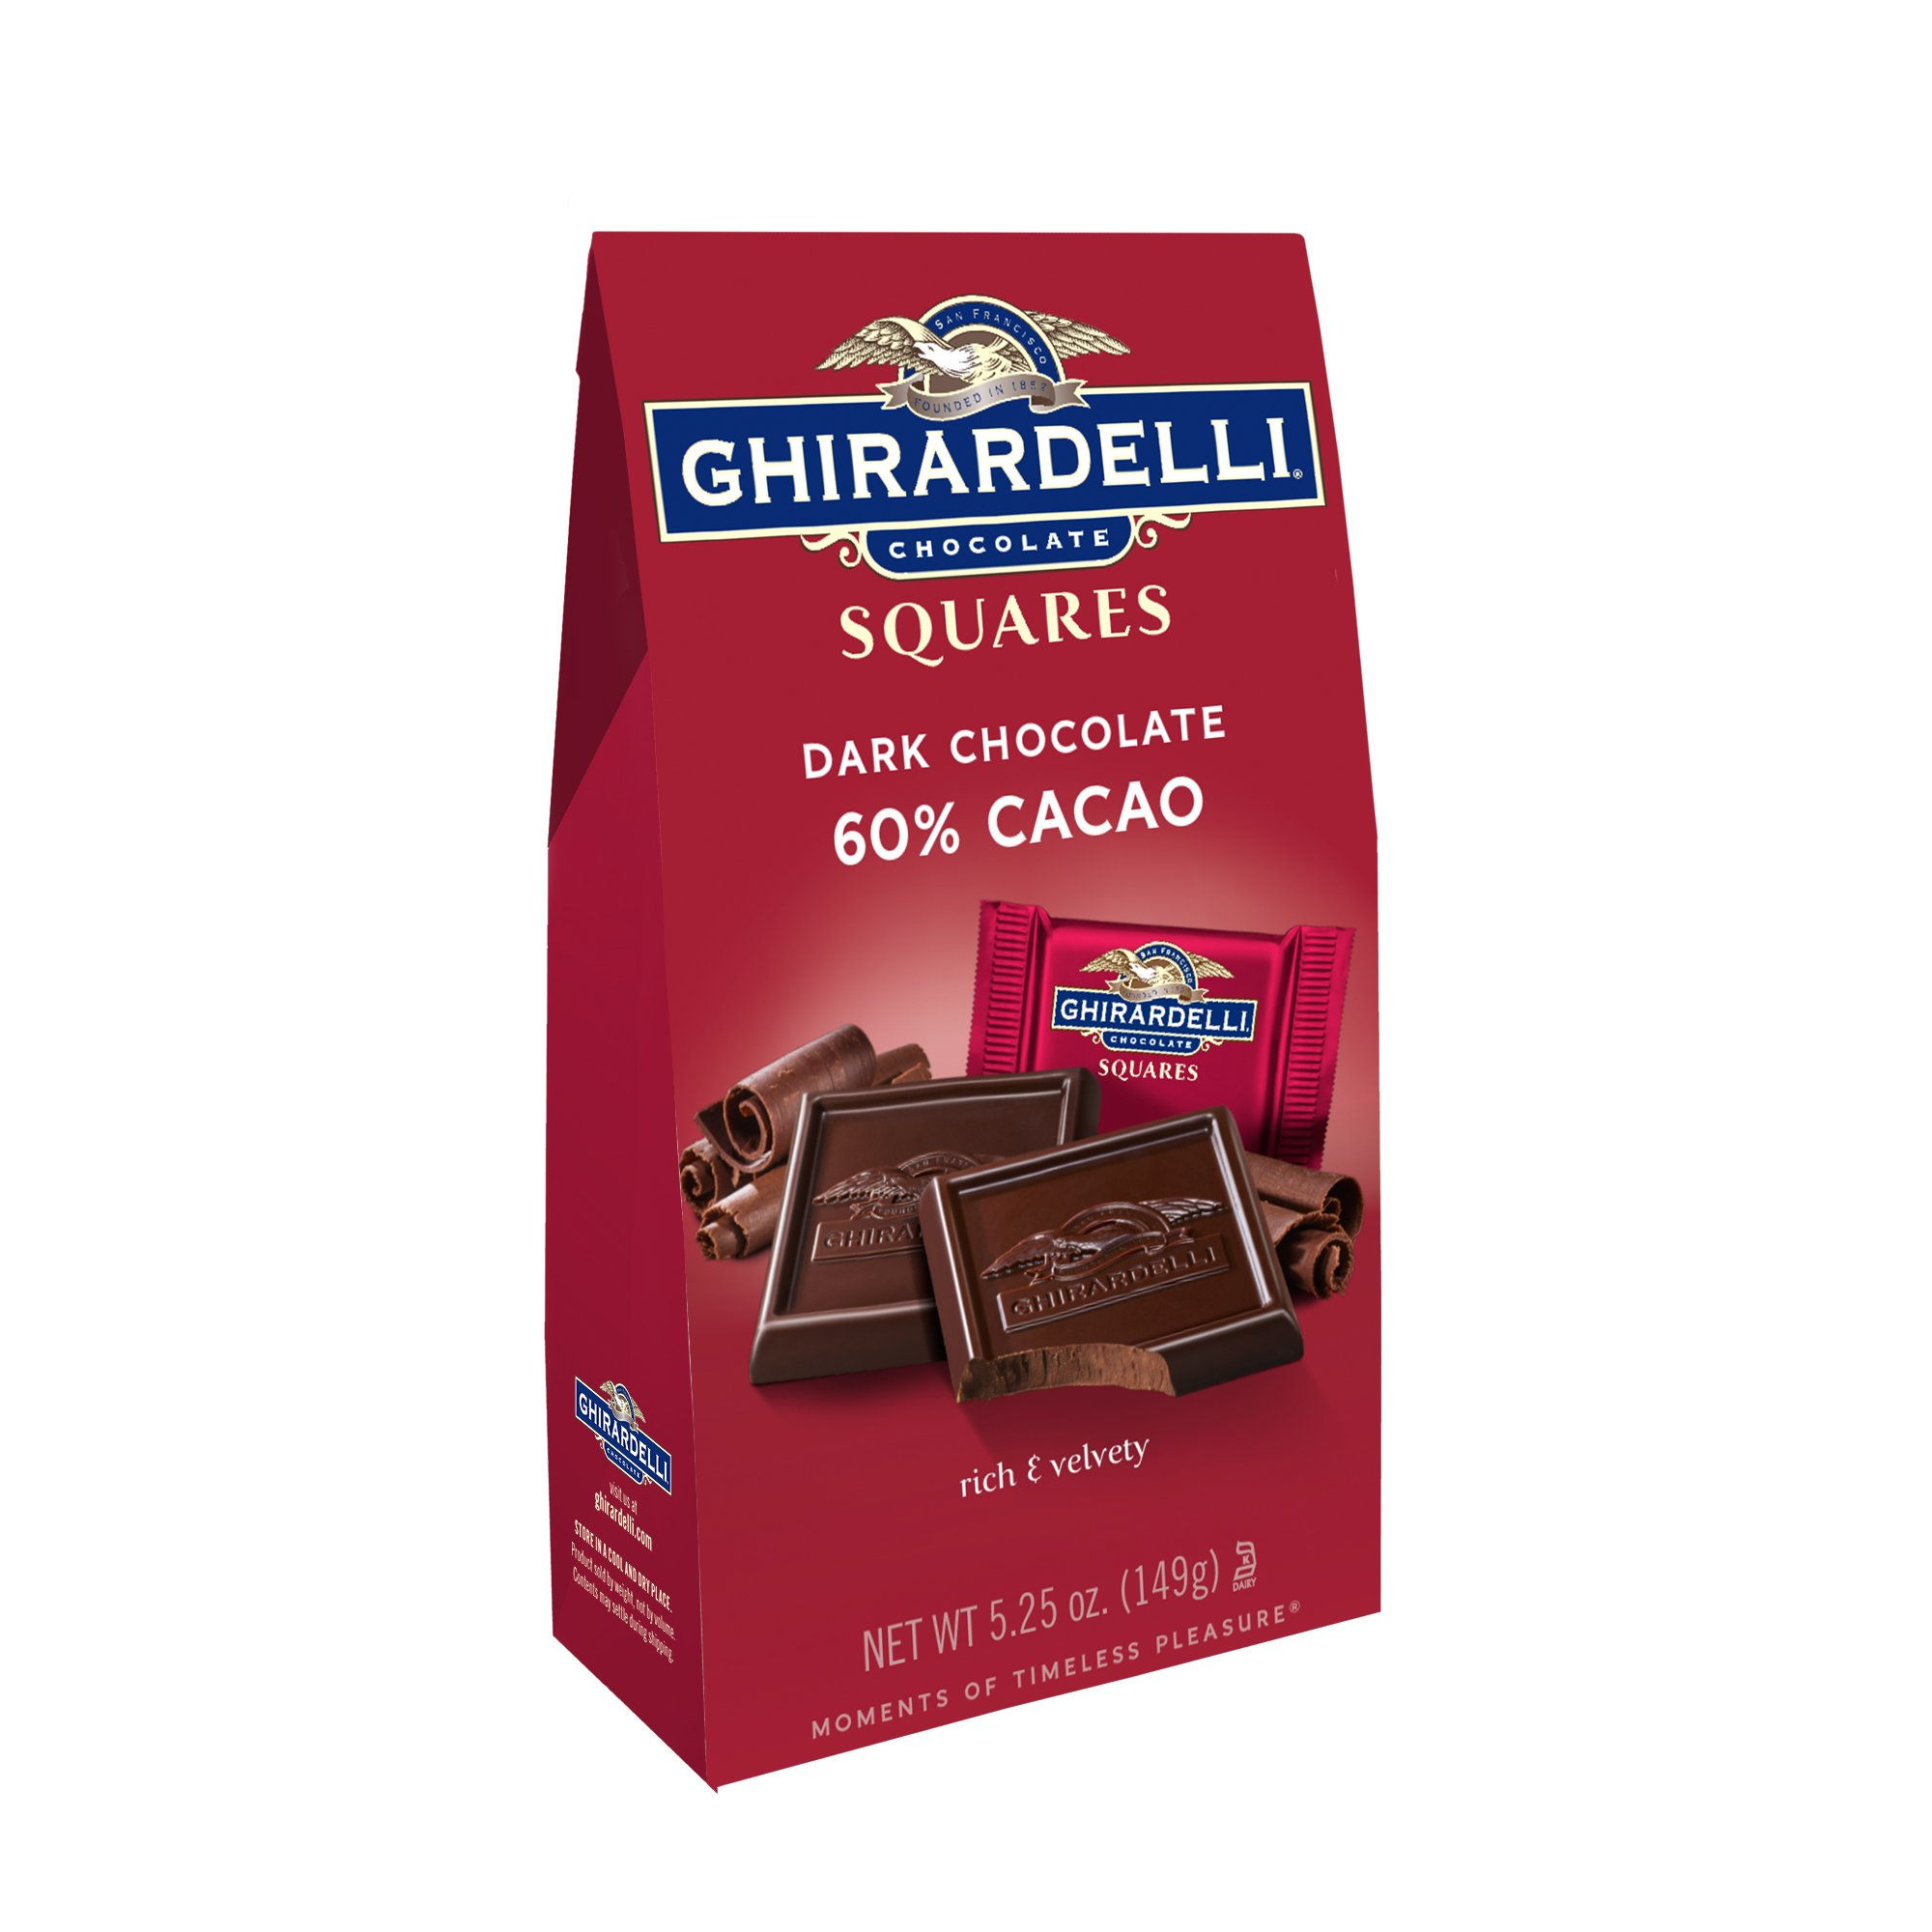 Ghirardelli Chocolate Squares, Dark Chocolate, 5.25 oz., (Pack of 6) by Ghirardelli (Image #1)